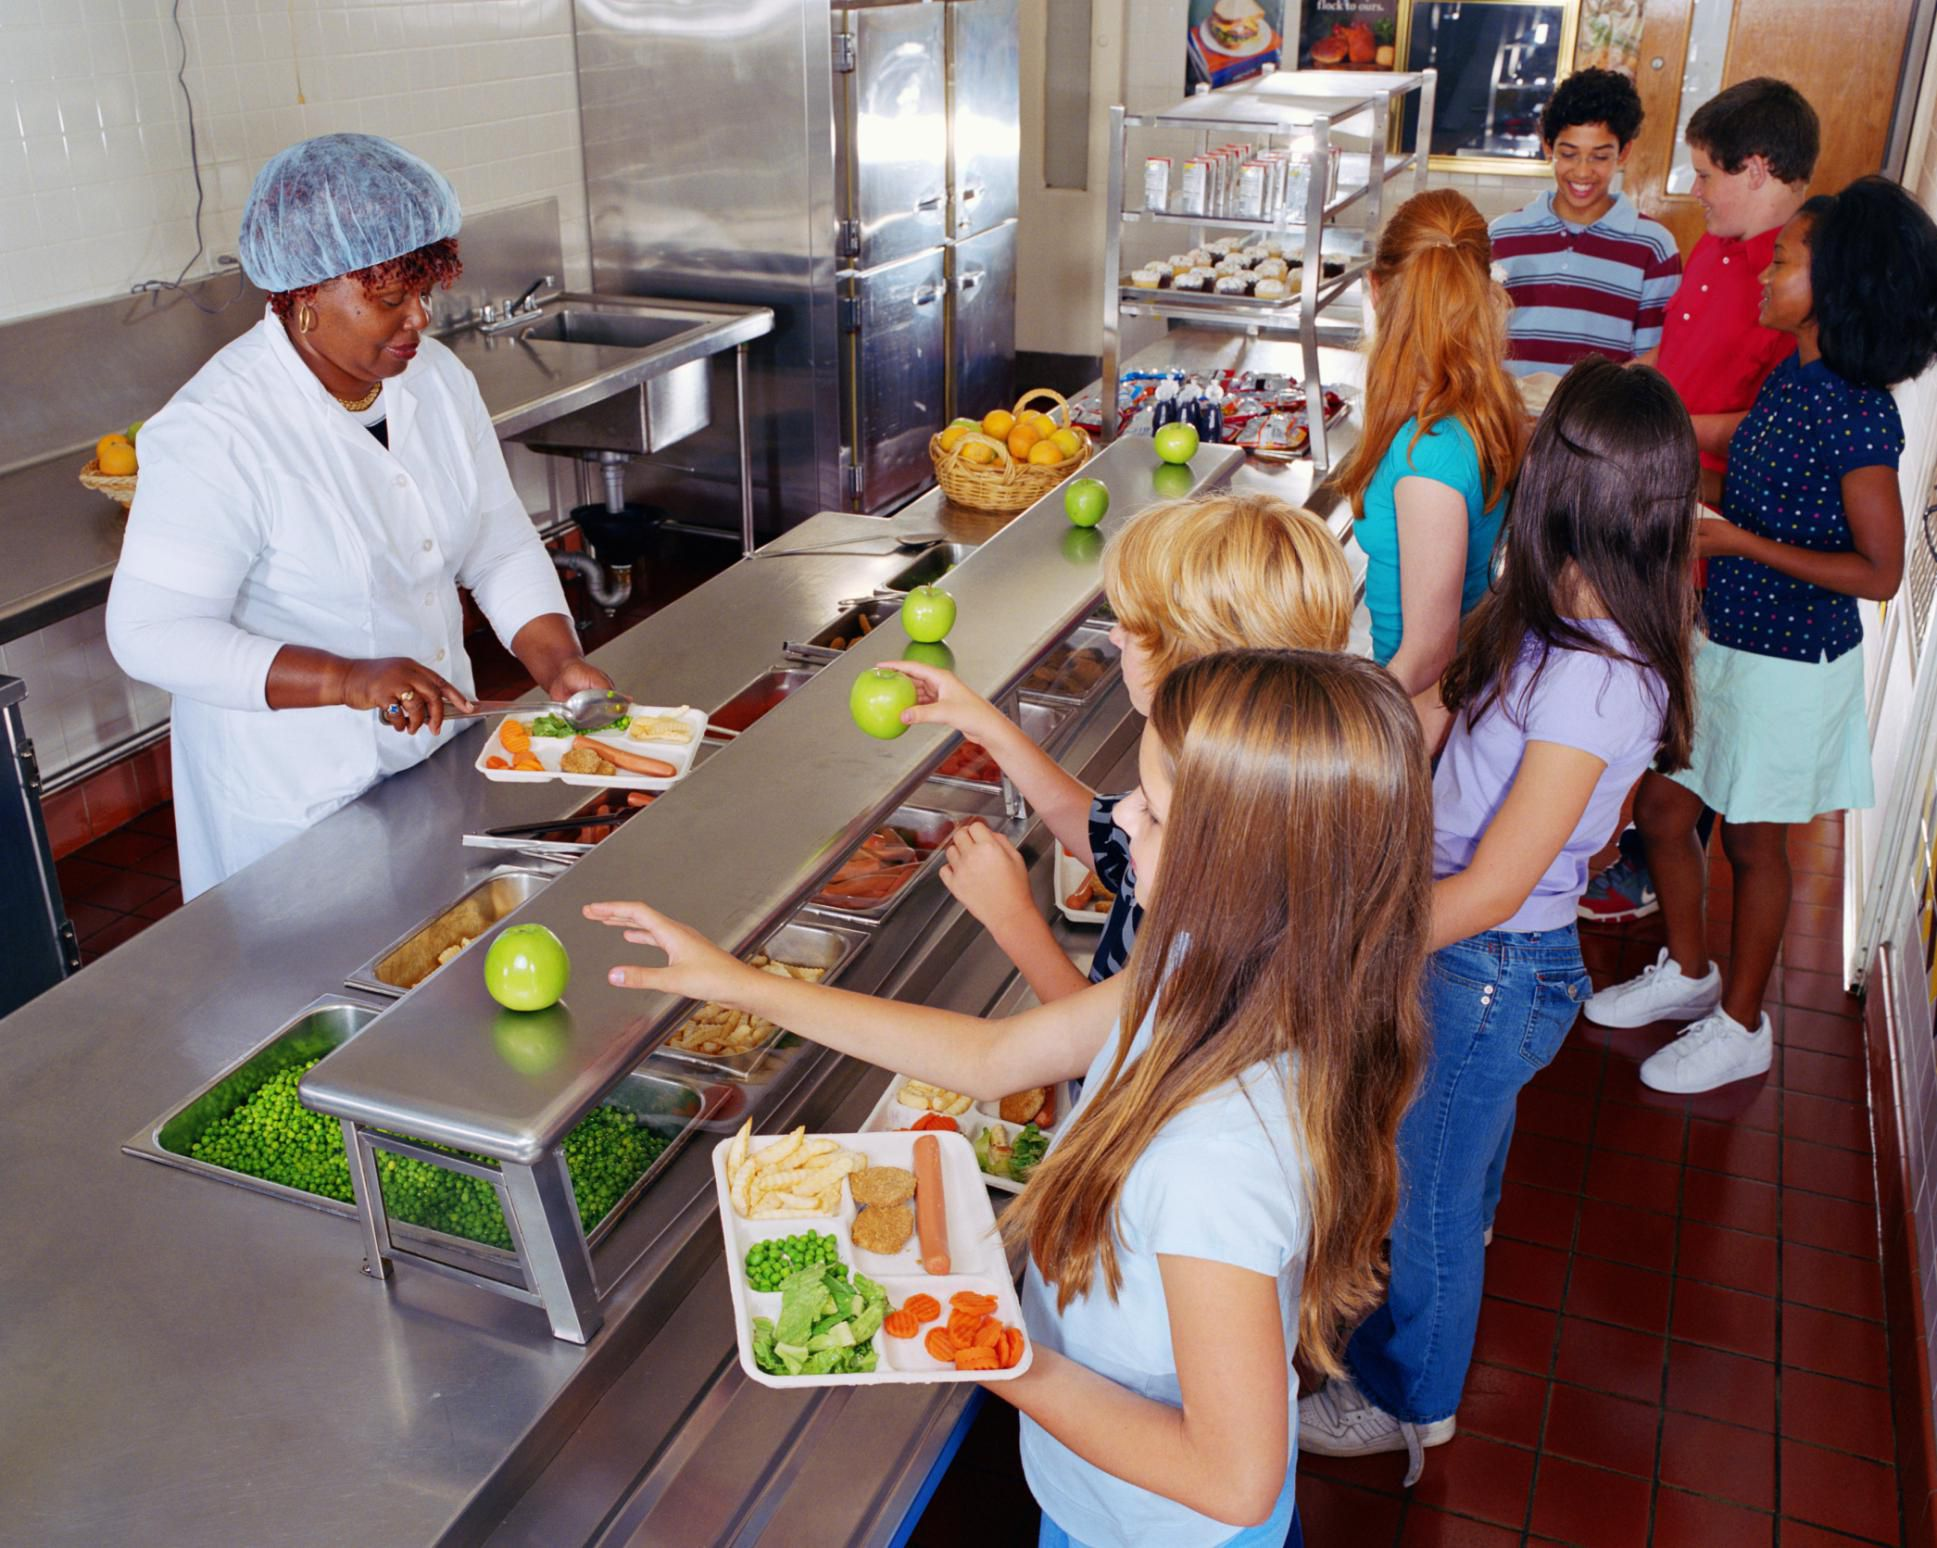 cafeteria food 2 essay Free cafeteria food papers, essays, and research papers.